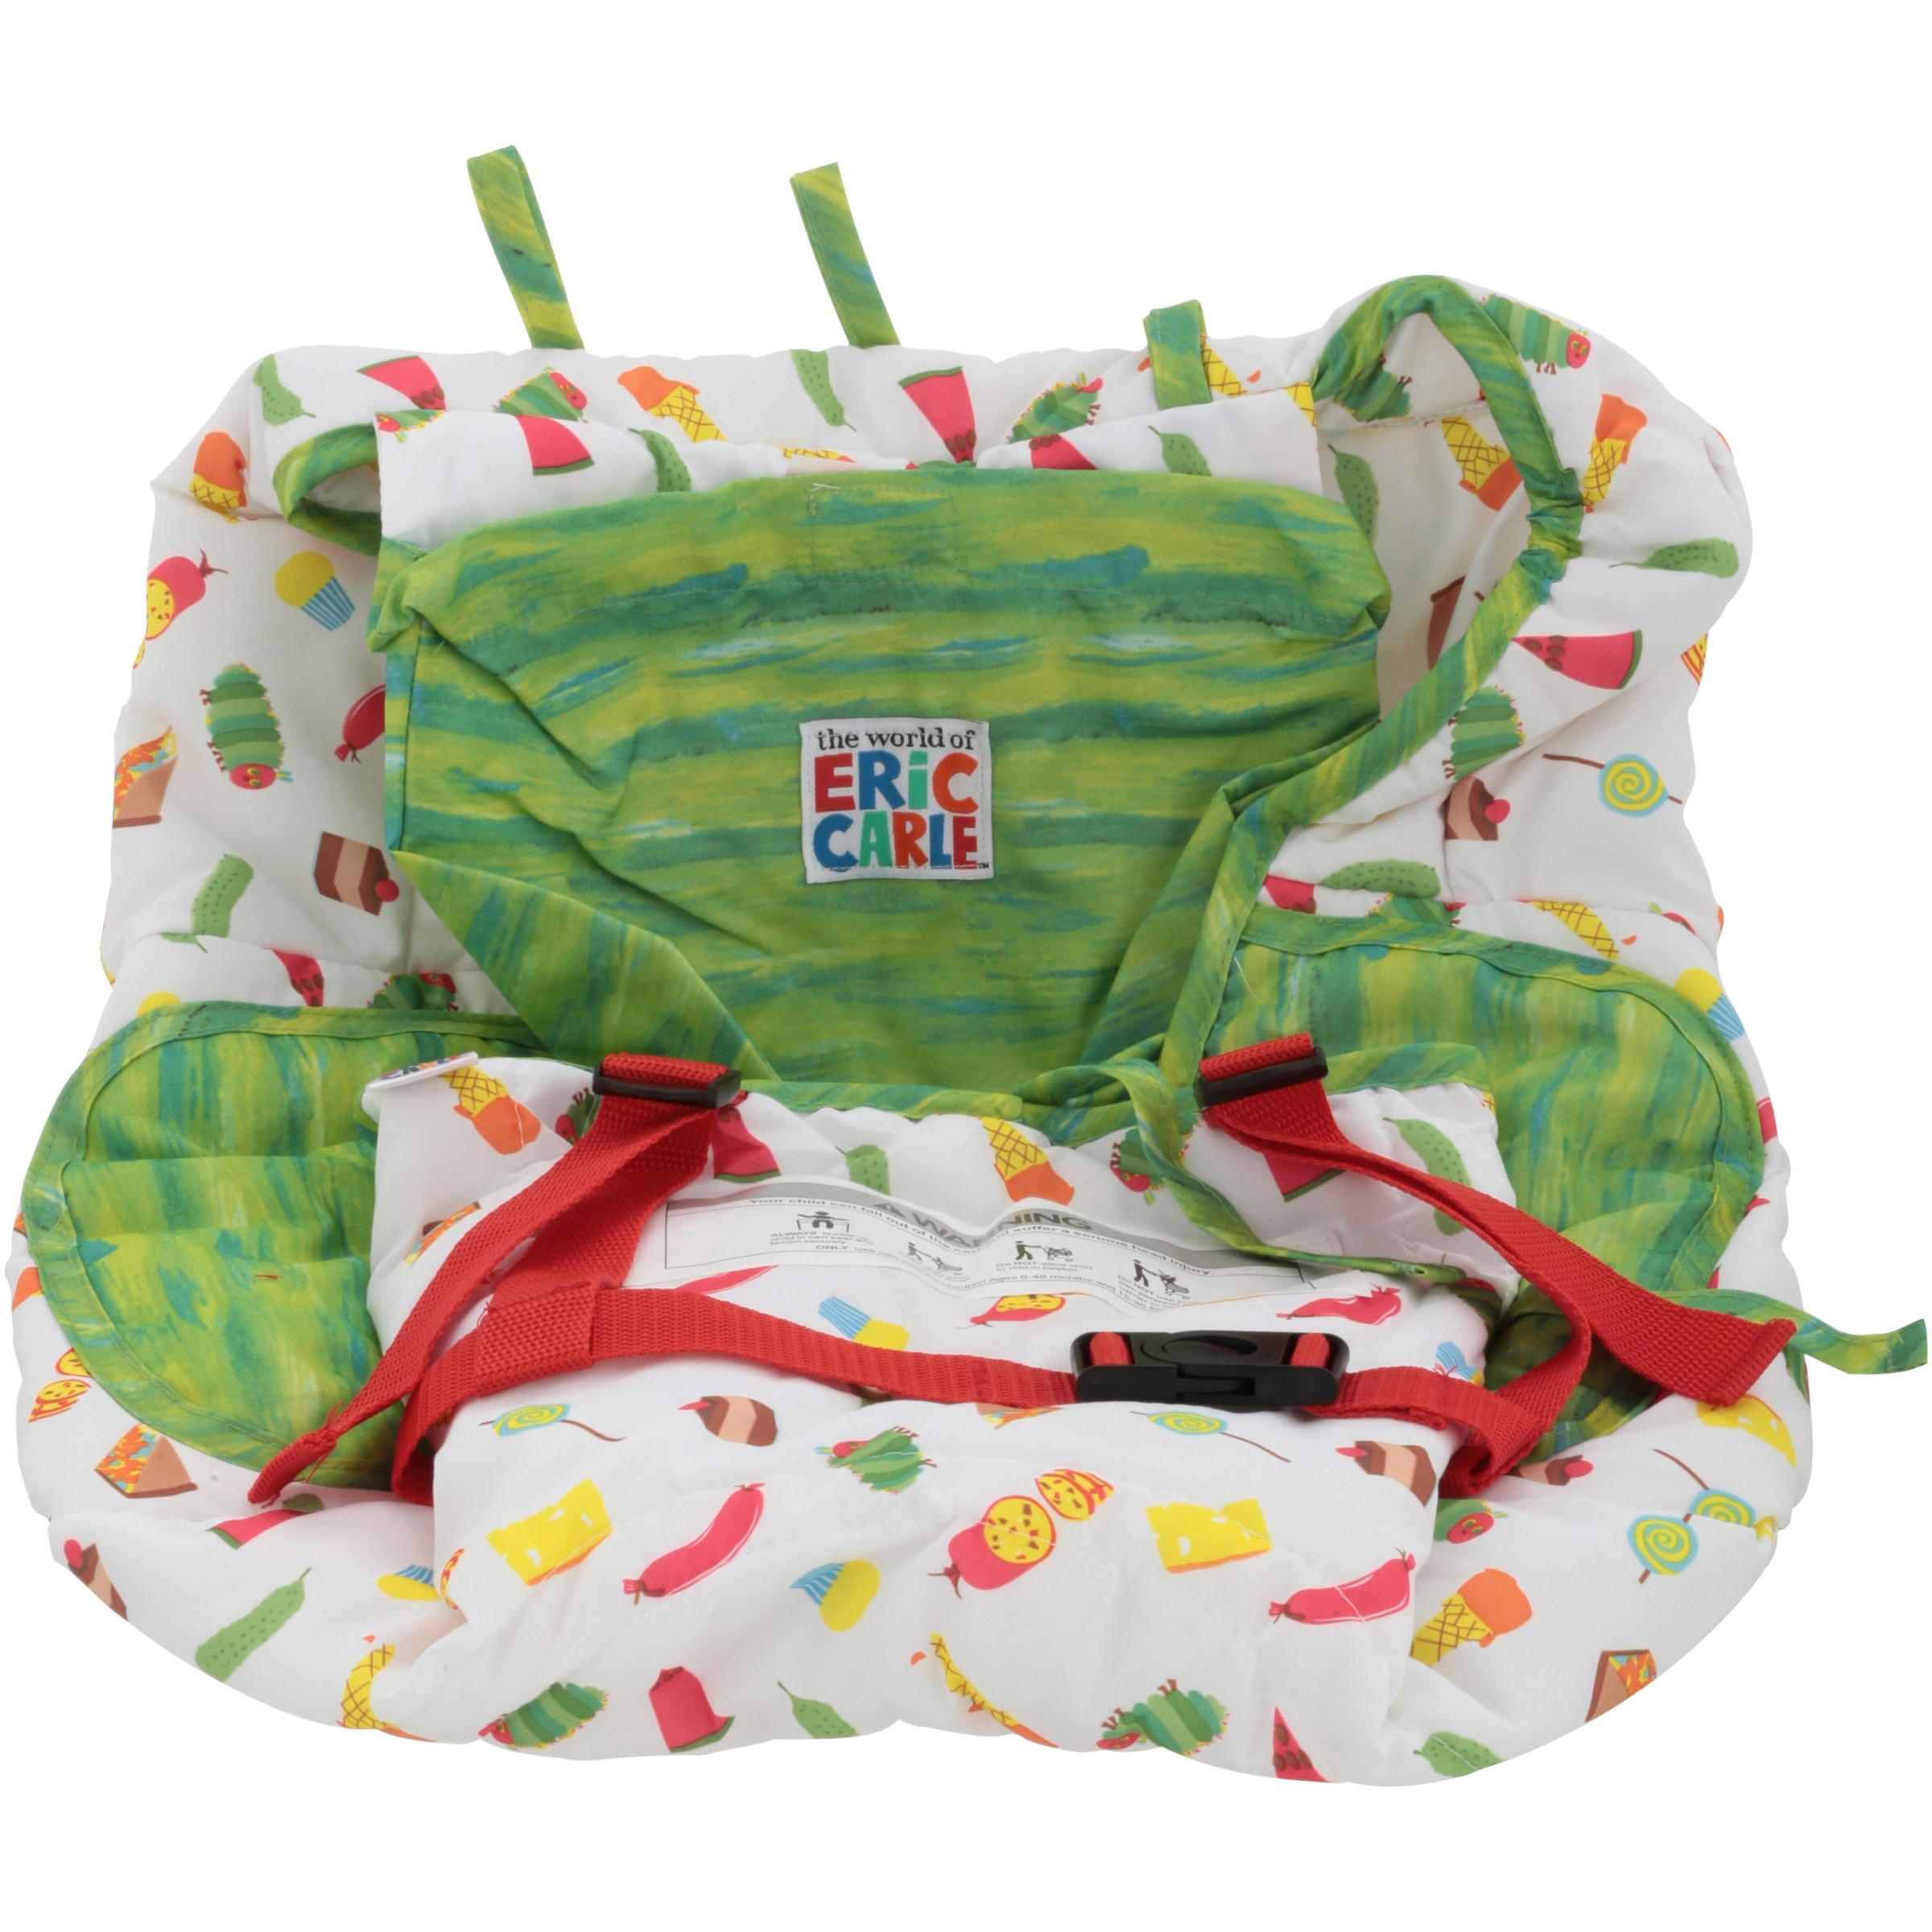 Click here to buy The World of Eric Carle The Very Hungry Caterpillar Shopping Cart & High Chair Cover by Eric Carle.